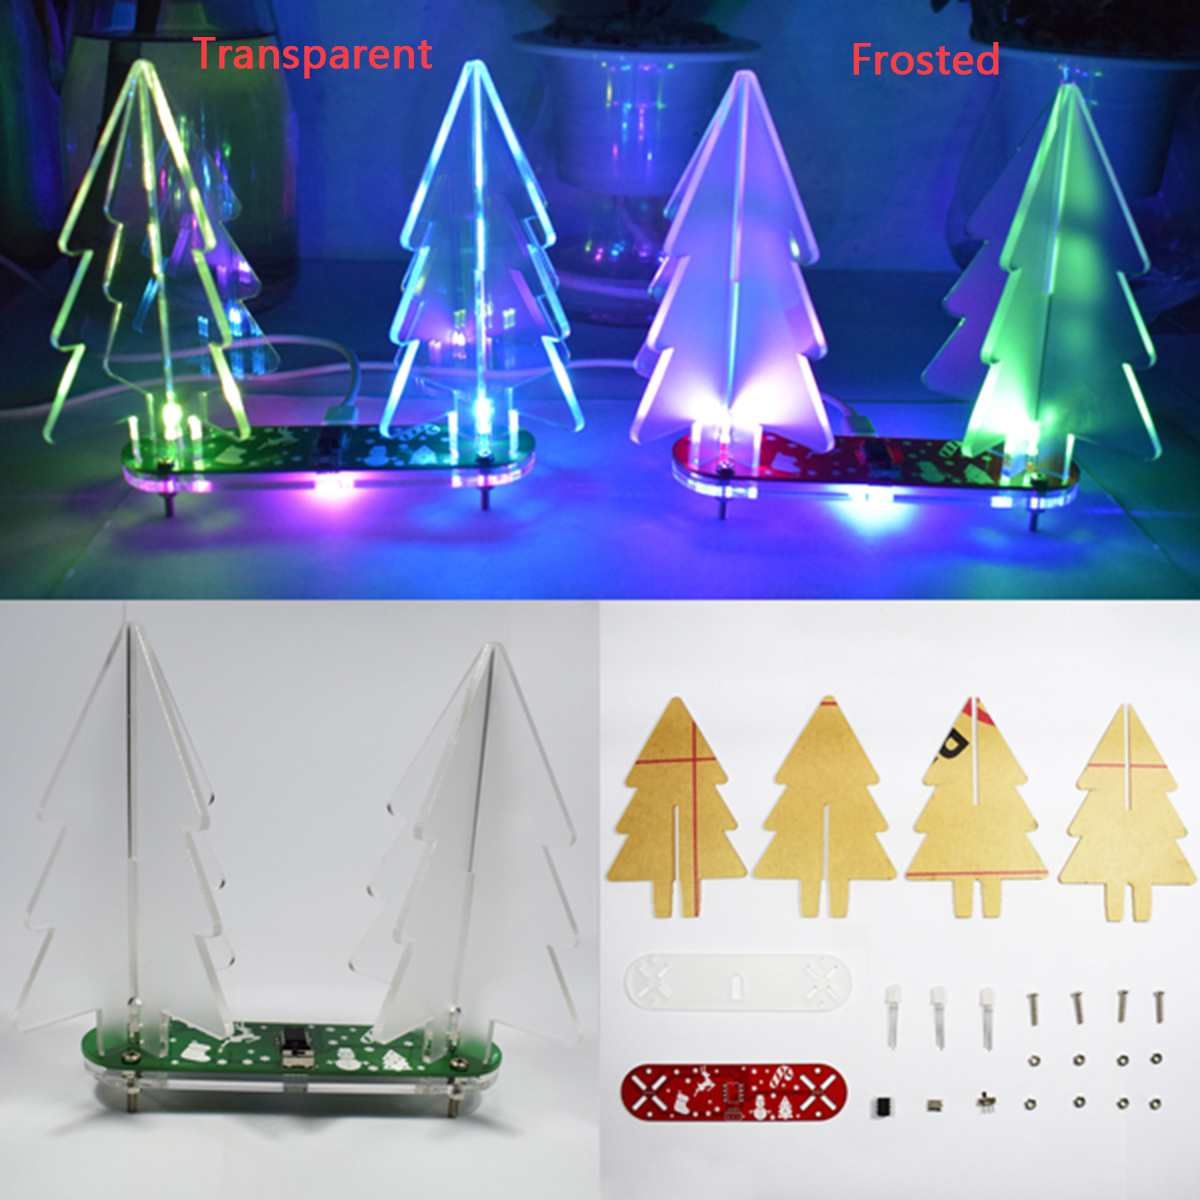 DIY Full Color Changing 3D LED Acrylic Christmas Tree Electronic Learning Kit Module for Christmas Tree Decorations DIY Crafts image